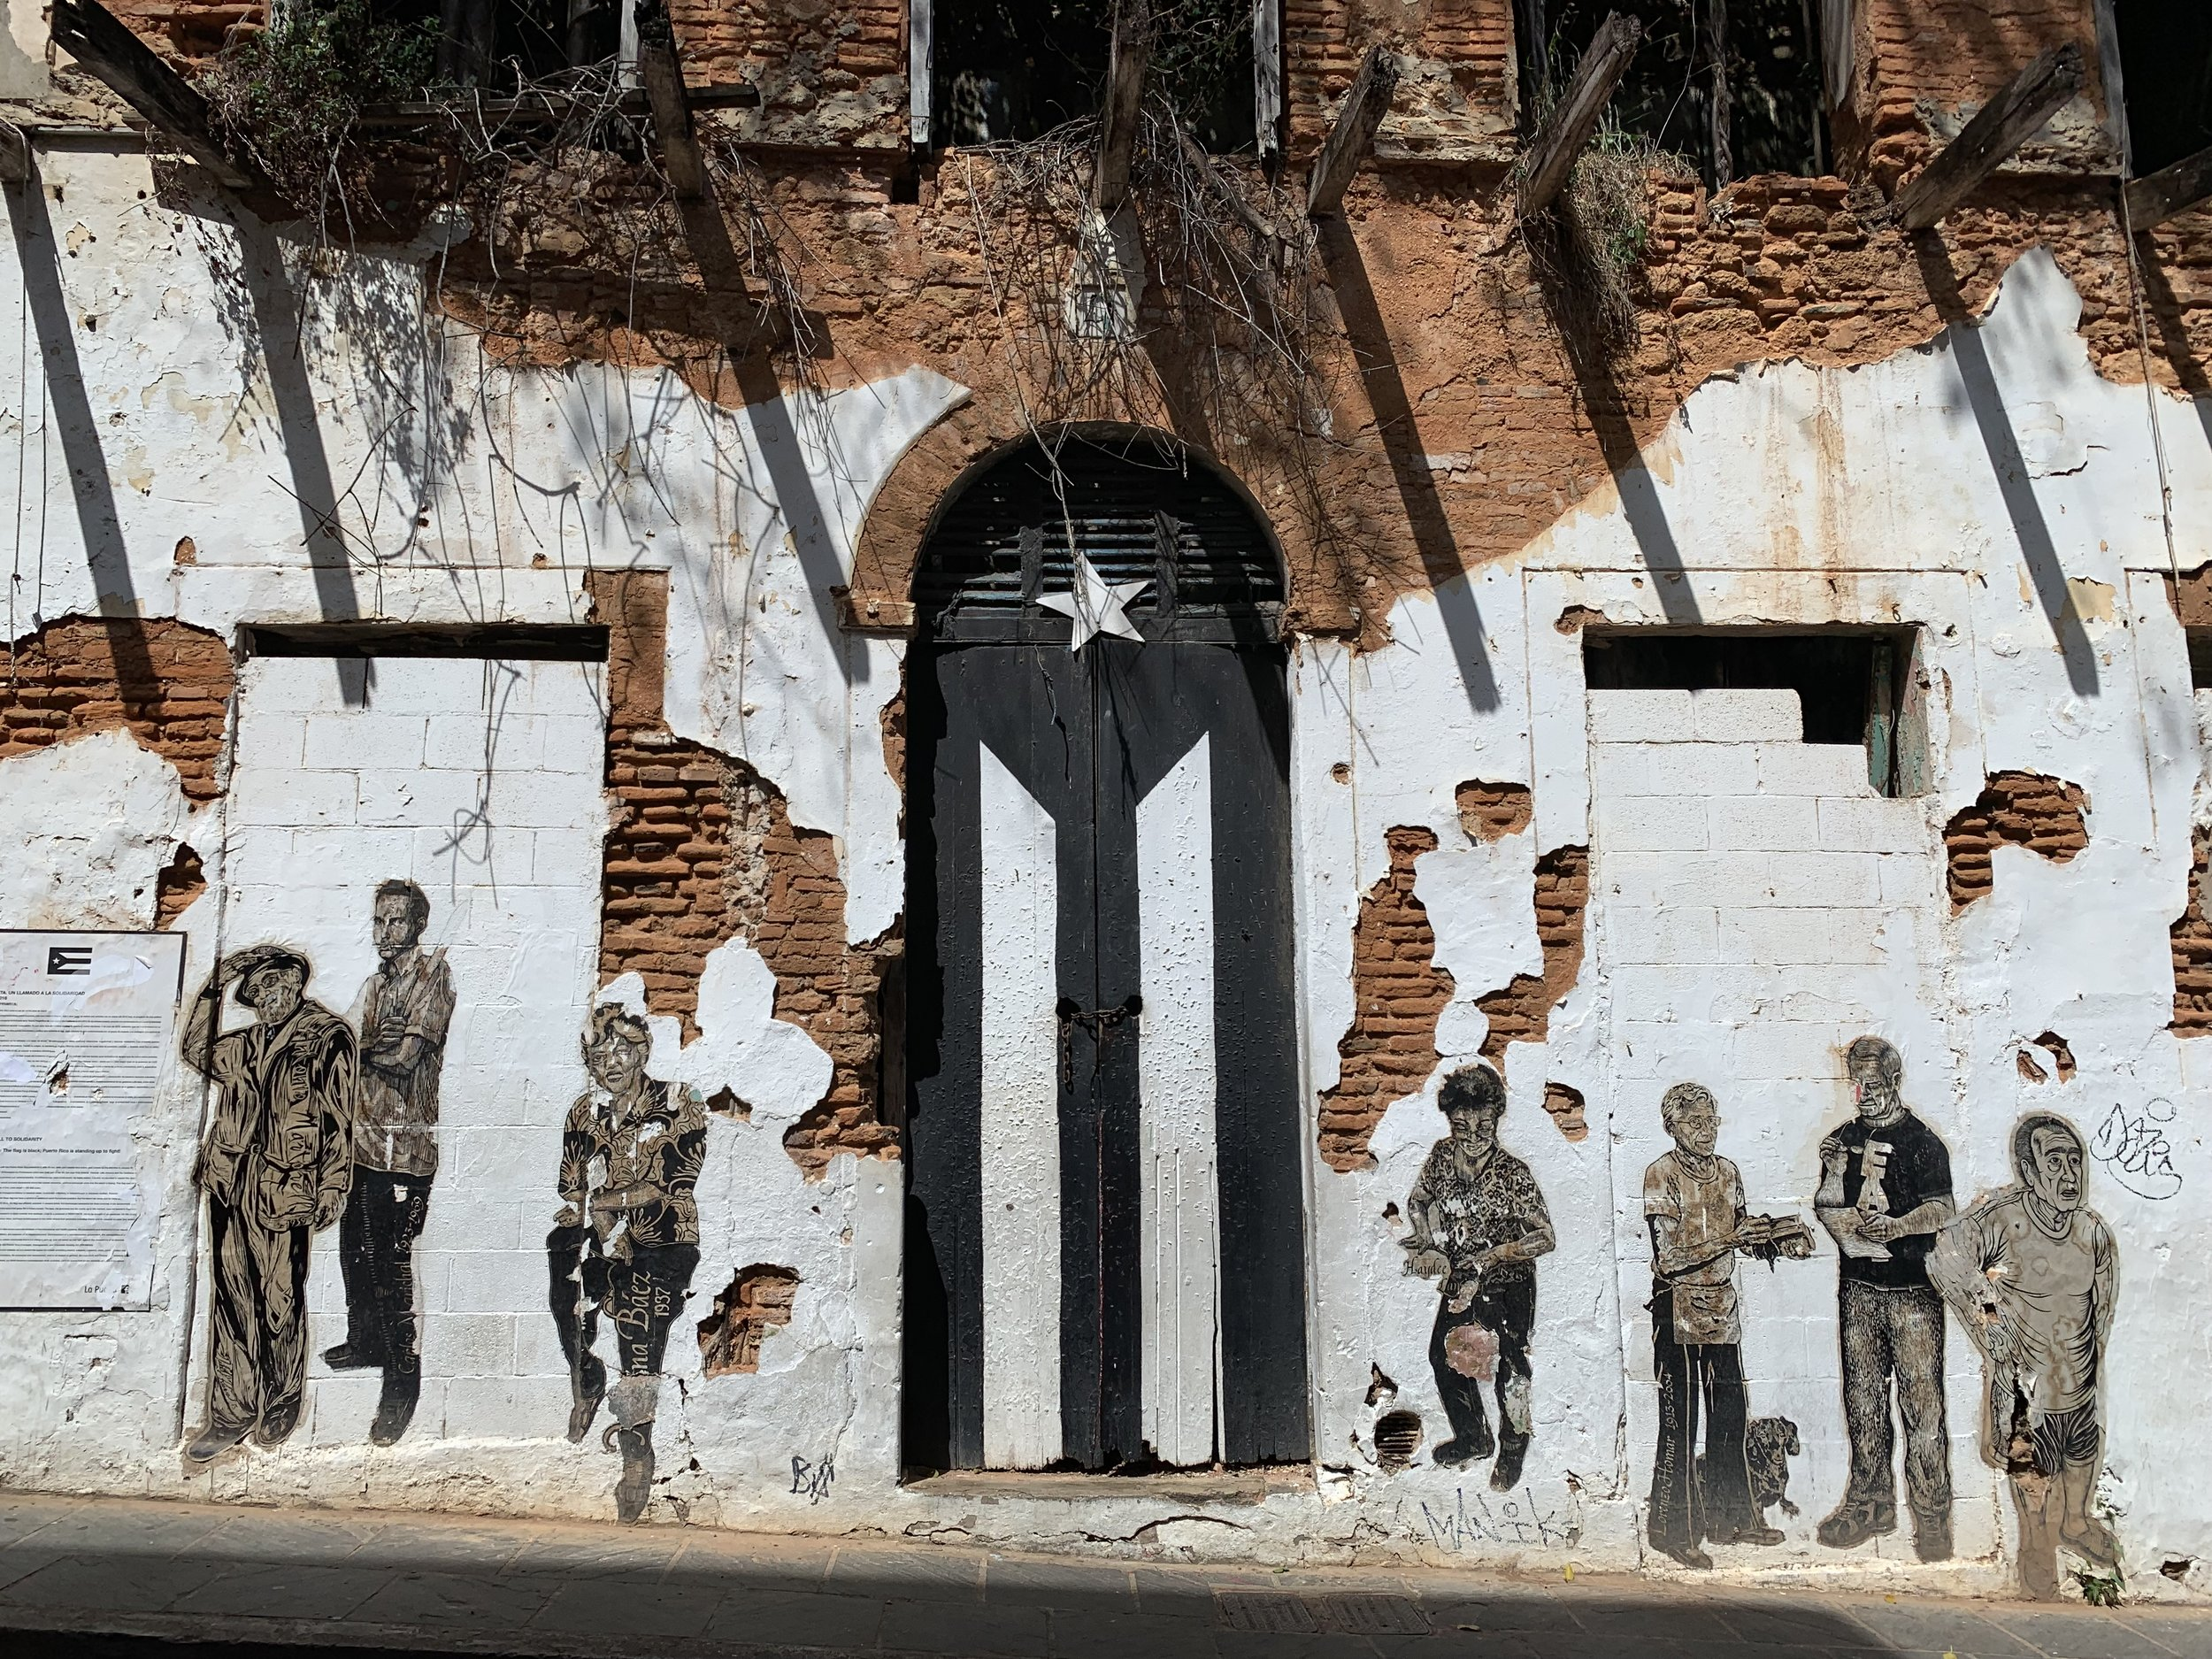 La Puerta de la Bandera, which is  now painted in black and white  in solidarity of the fight for social, economic and political progress in Puerto Rico.